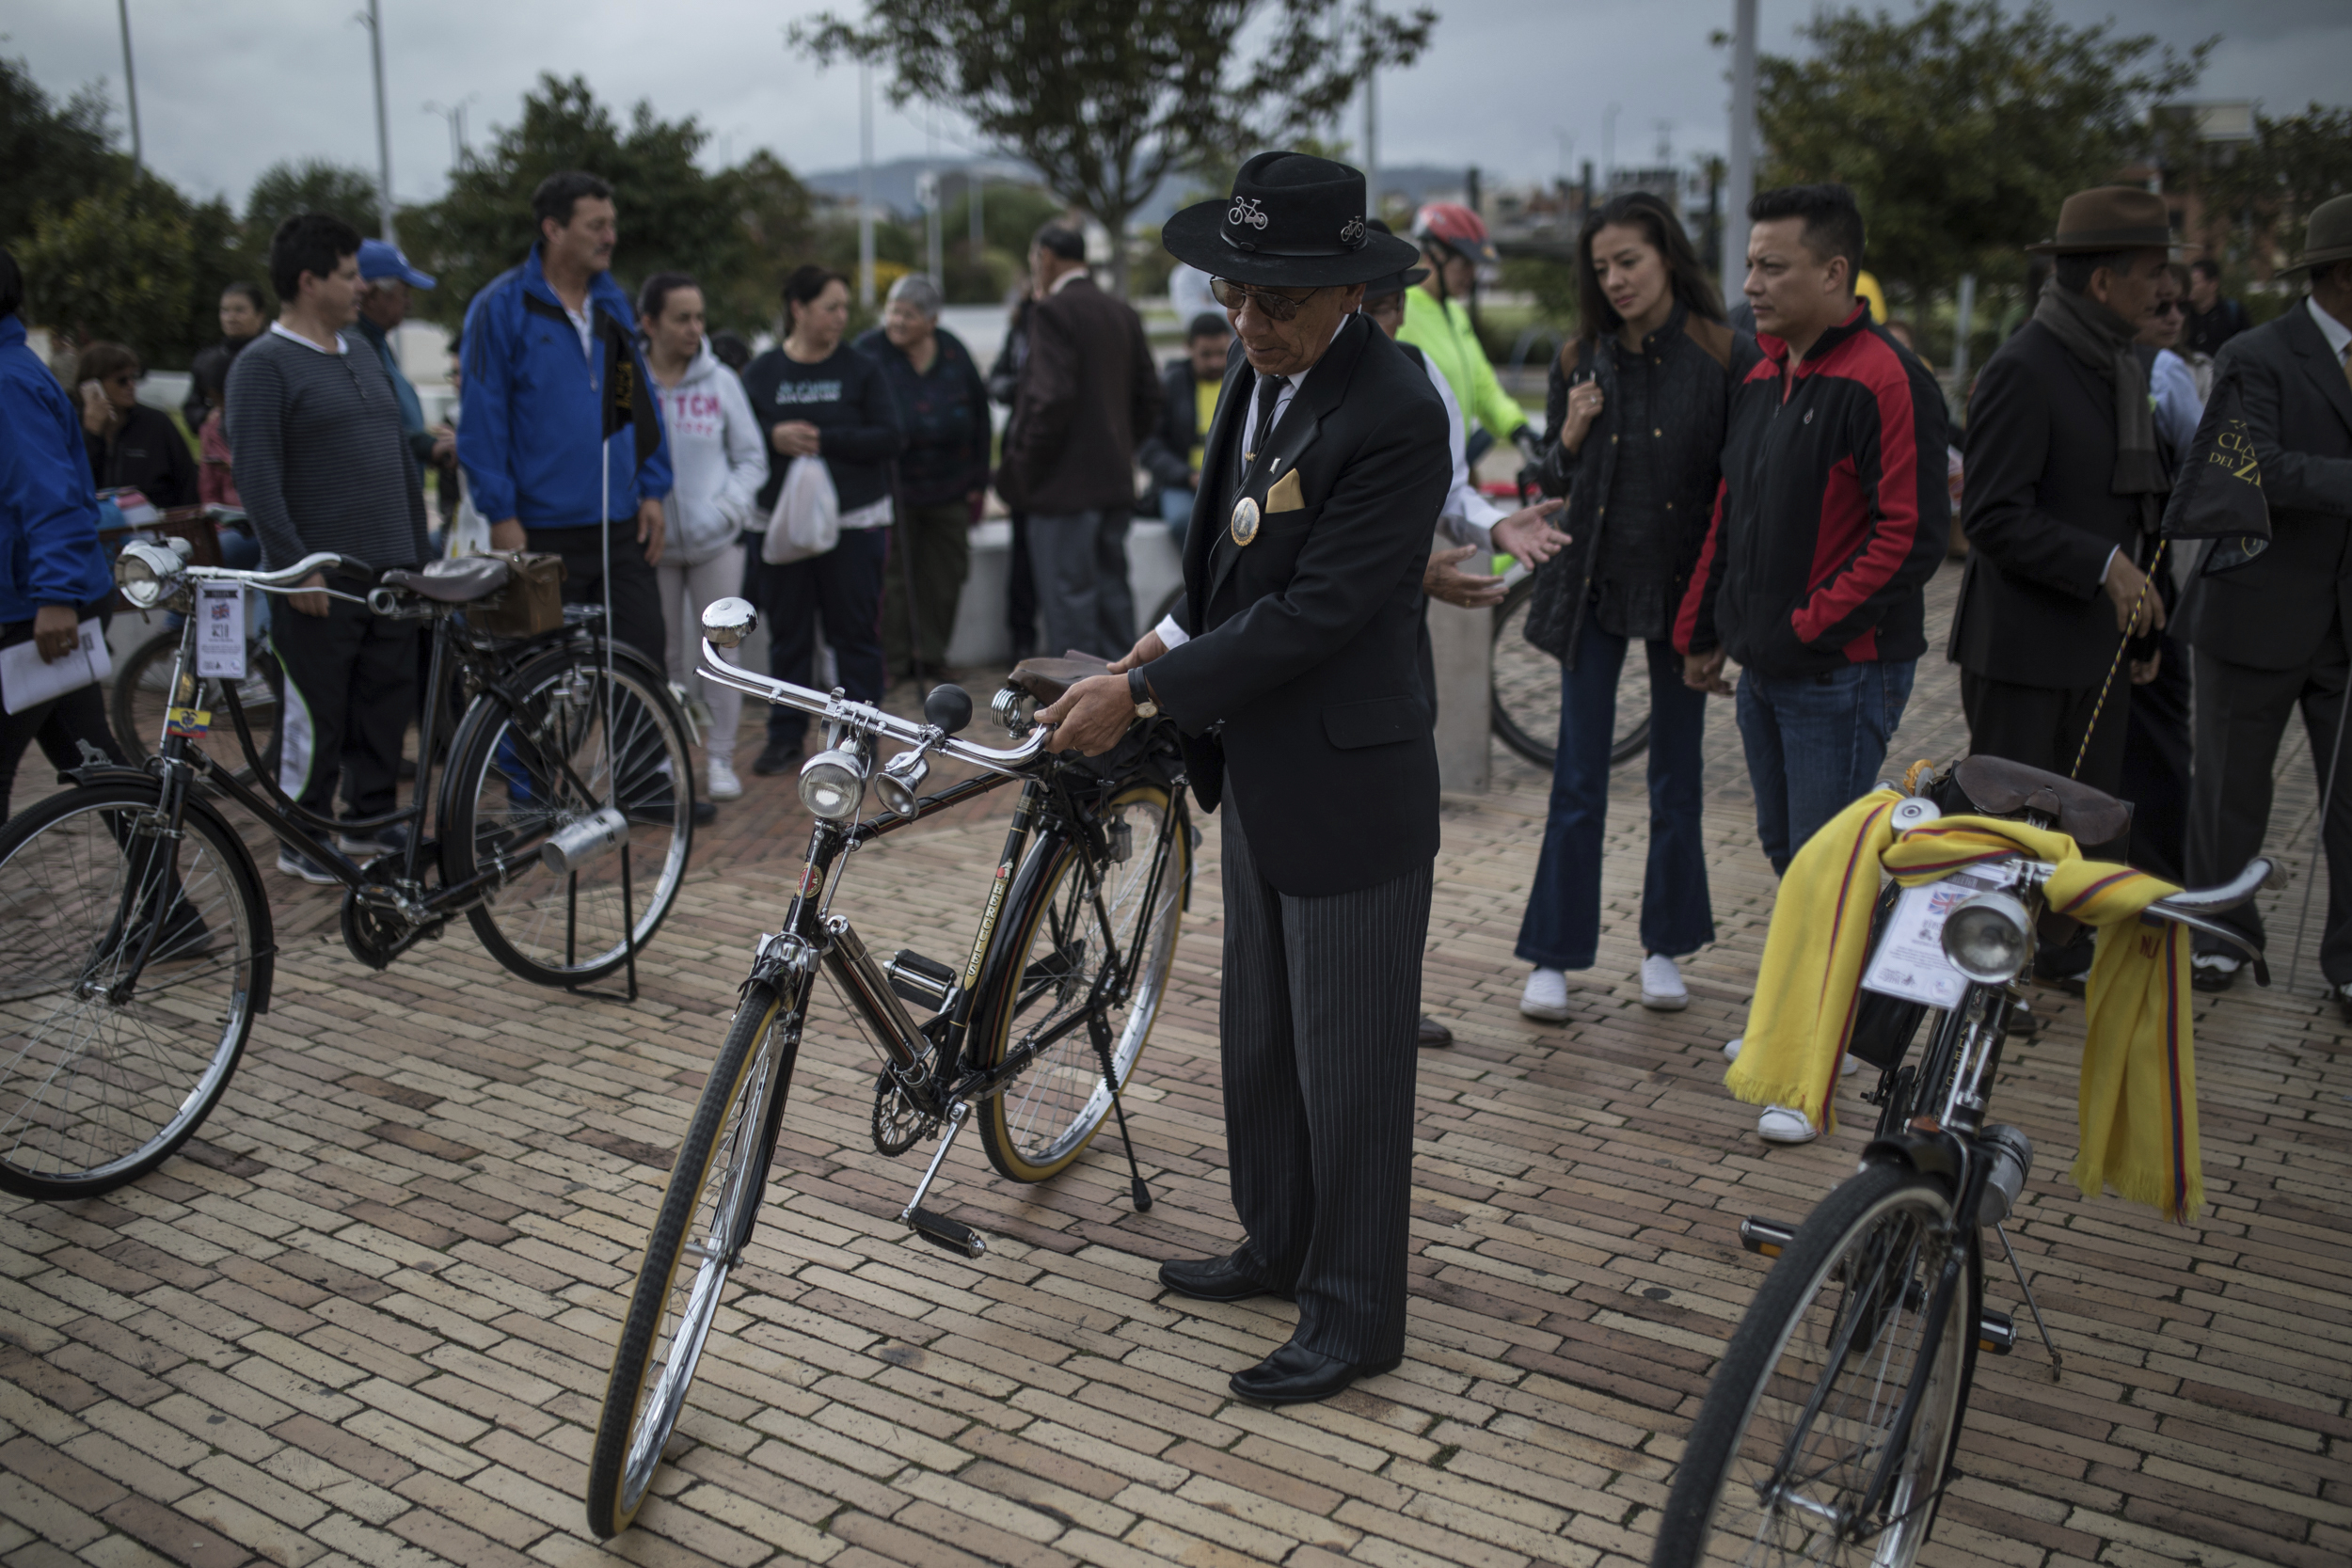 A member of the Zipaquira Old Bicycles Club parks his bike at the main square of the hometown of cyclist Egan Bernal in Zipaquira, Colombia, Sunday, July 28, 2019. Barring a crash or a last-minute health issue Bernal will become the first Colombian to win the cycling's biggest race when the Tour de France ends on Paris' Champs-Elysees on Sunday. (AP Photo/Ivan Valencia)